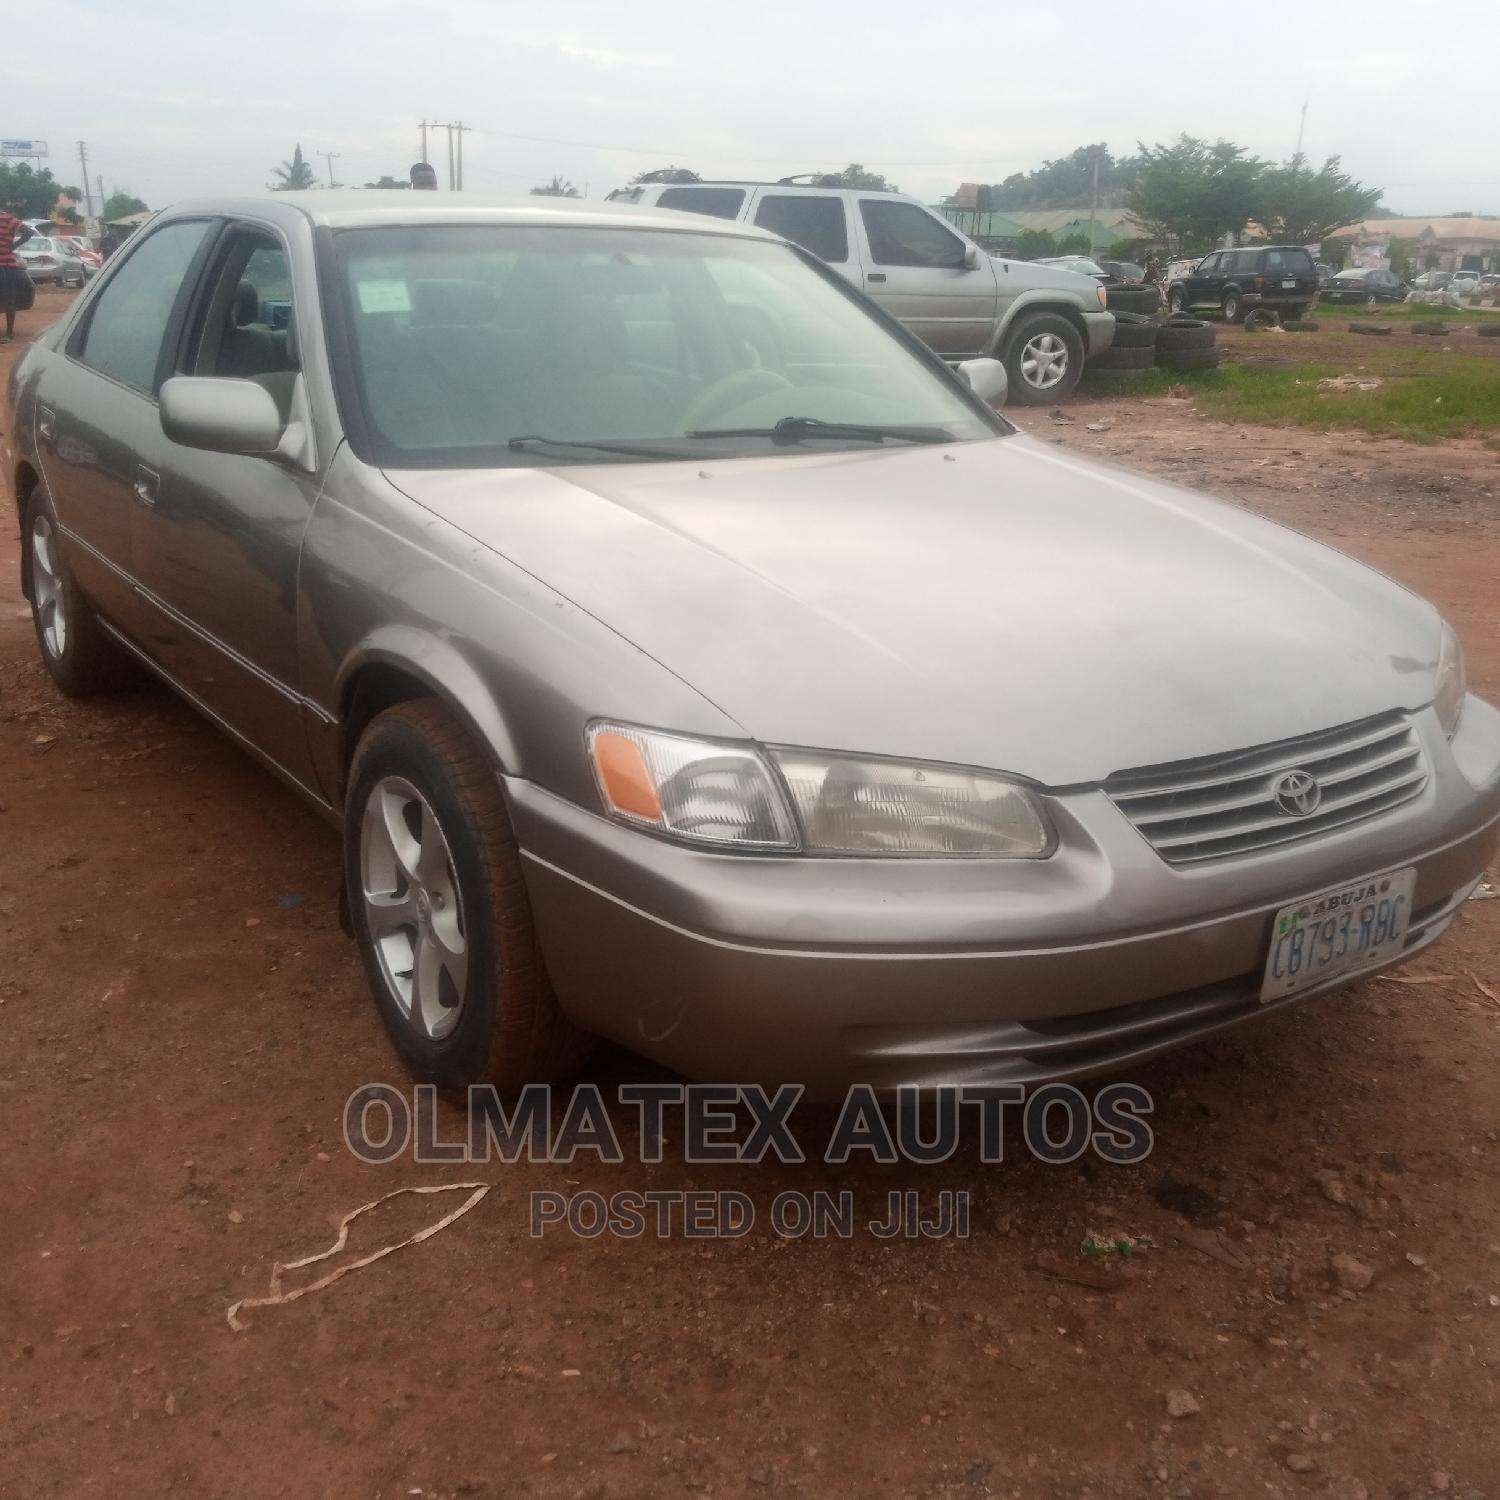 Archive: Toyota Camry 2000